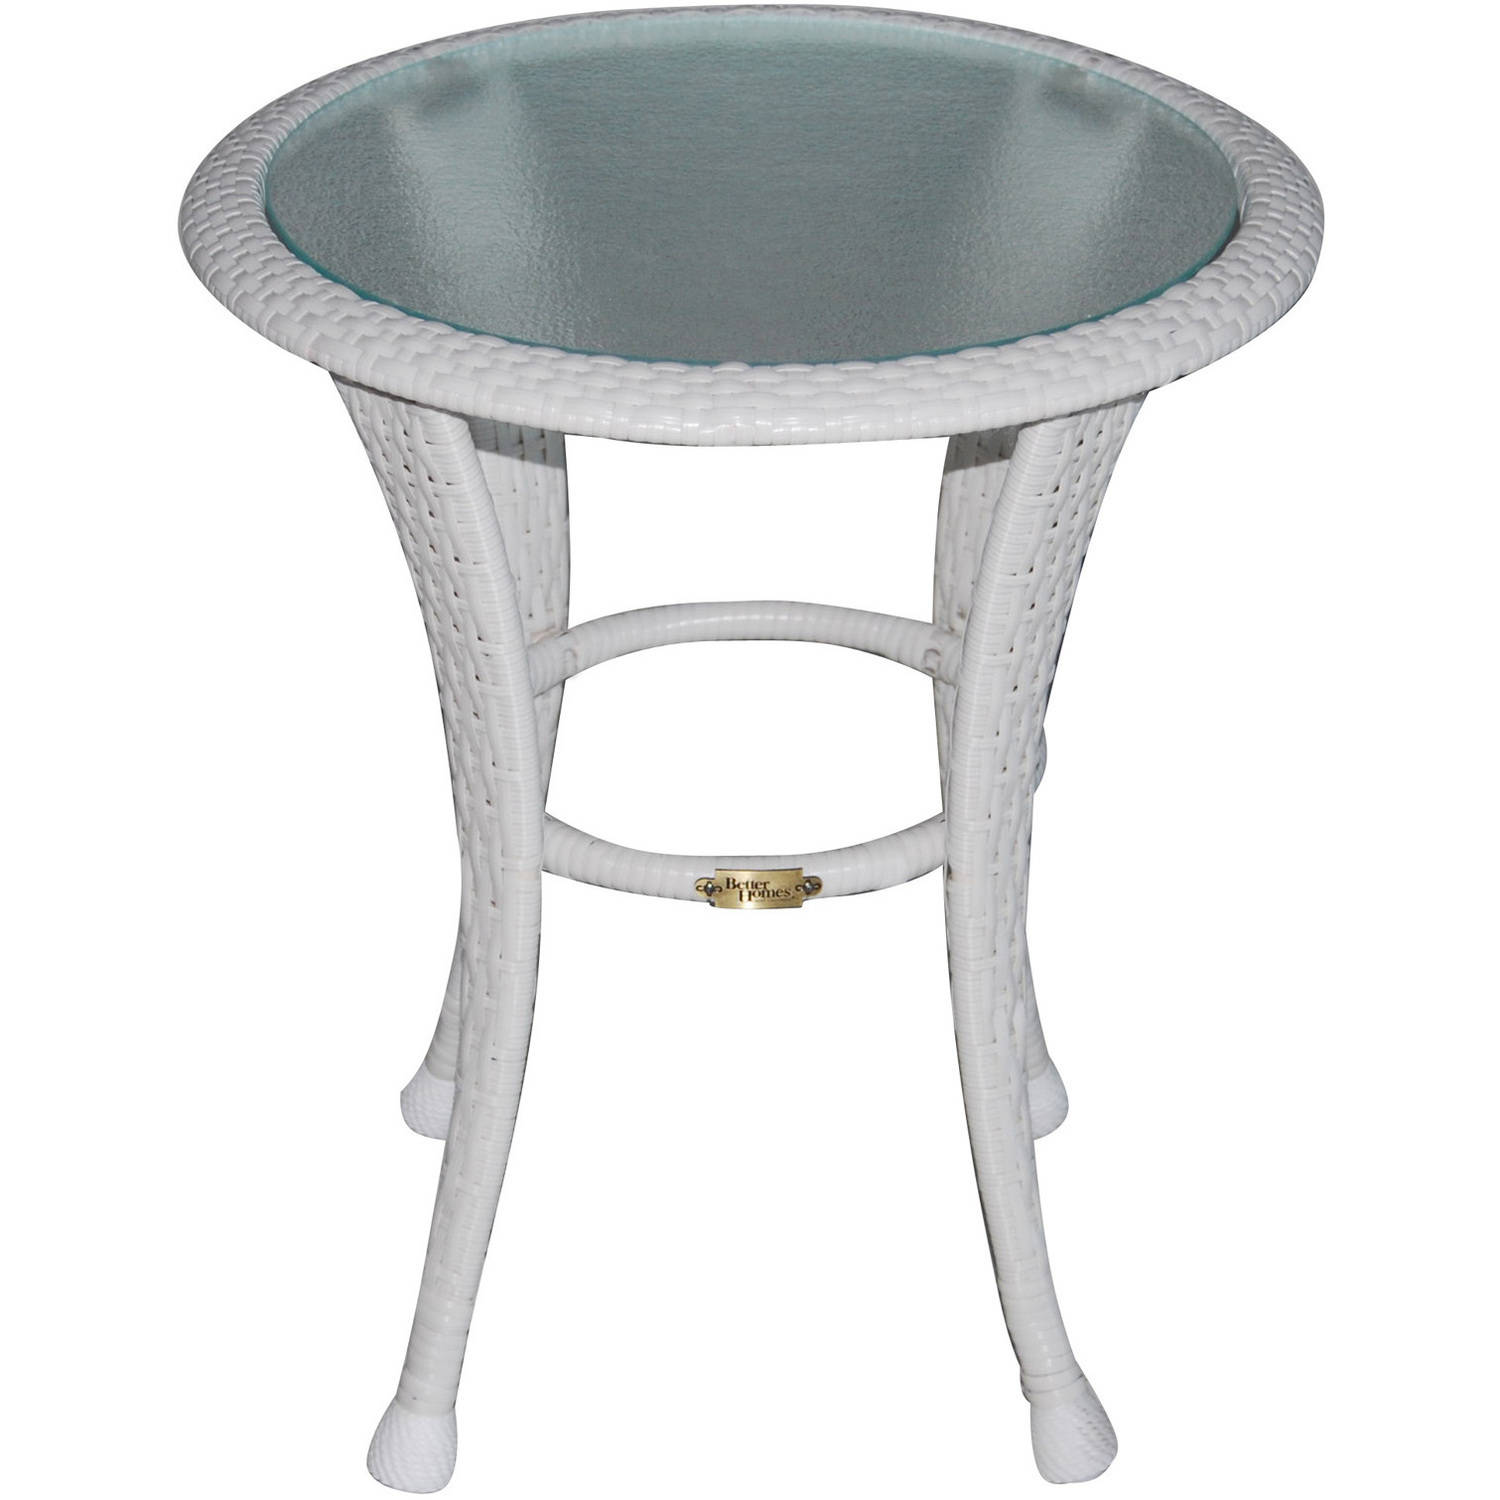 small round outdoor side table home design ideas box black target baskets chair storage patio wicker garden corner sofa bugs rattan resin with ana white adirondack furniture